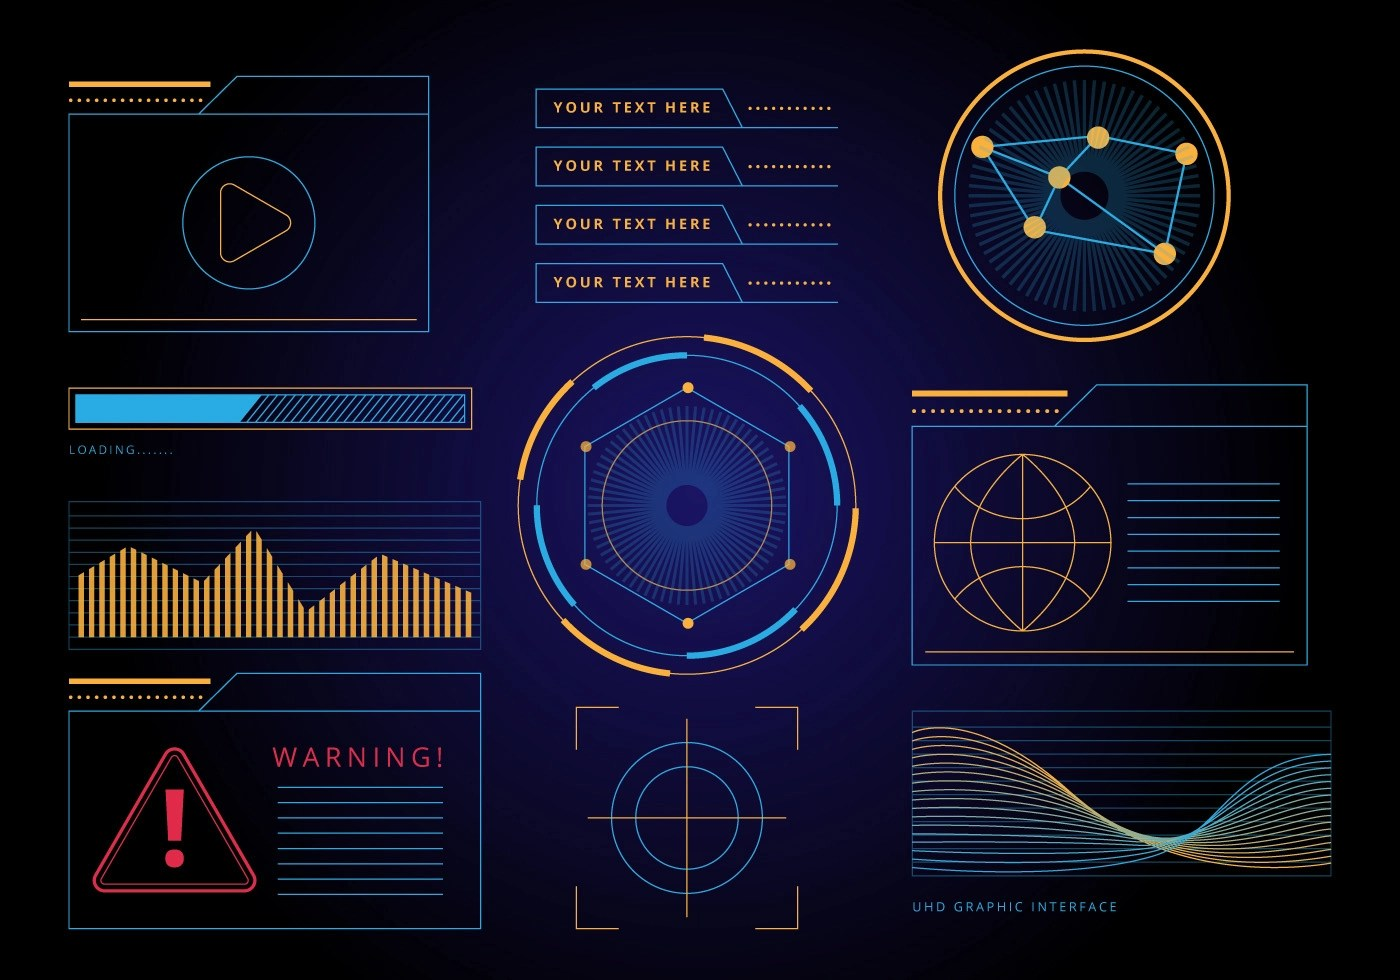 Free HUD Graphic Interface Vector Download Free Vector Art Stock Graphics Amp Images